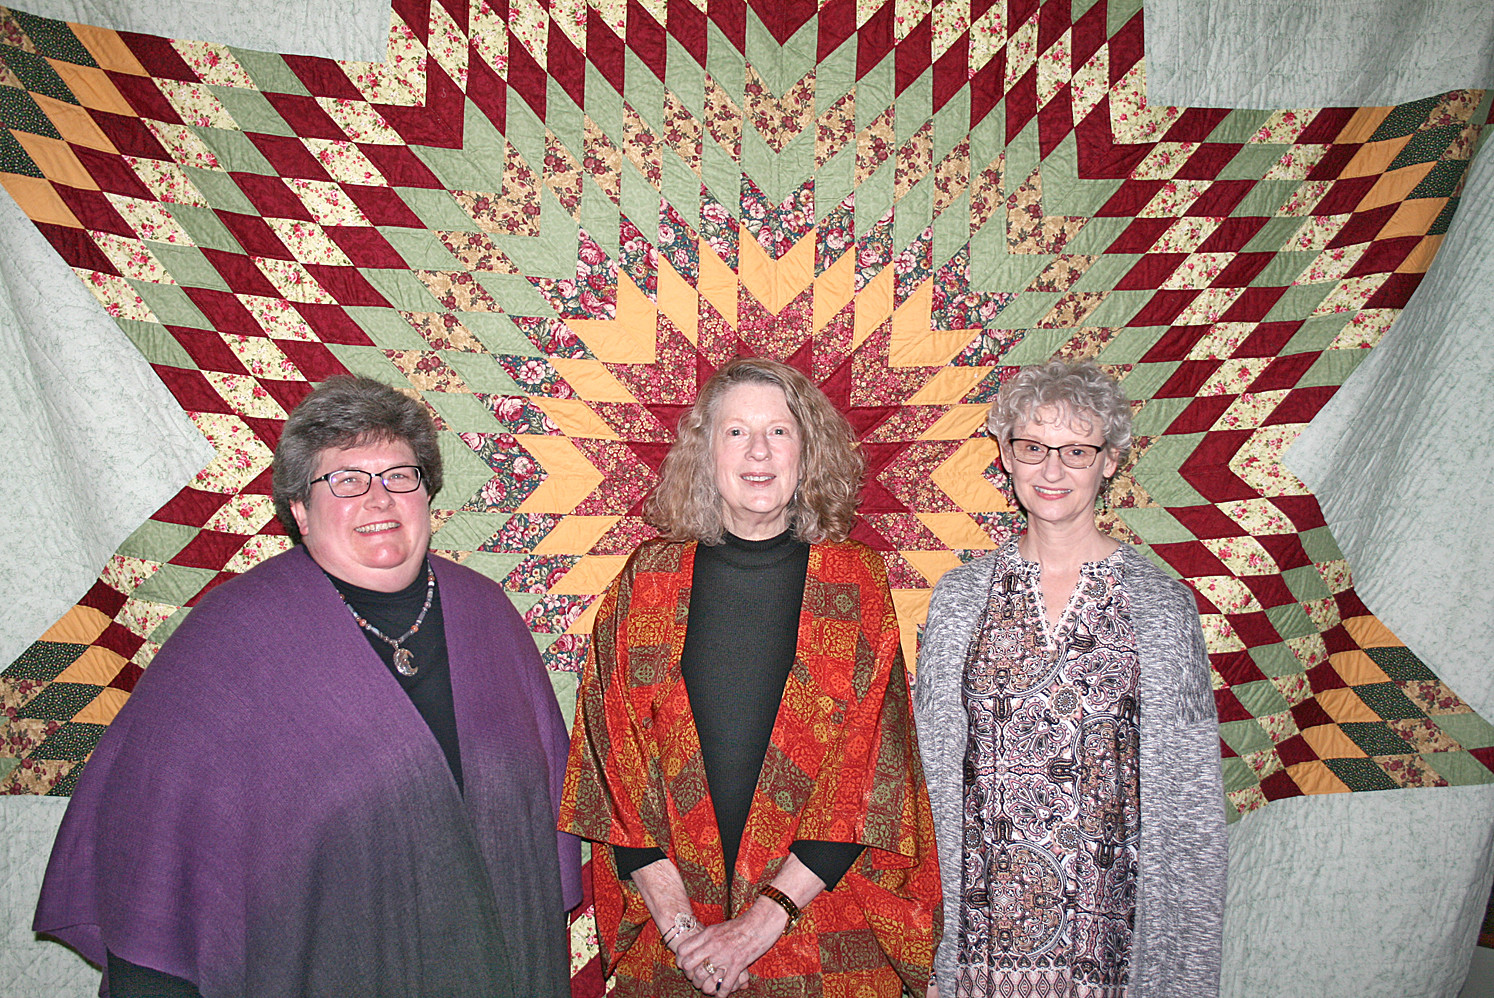 The winners of the Stitches in Time event's quilt challenge lined up in front of the large quilt in the Museum Center at Five Points' lobby. From left are Johanna Kosik, third place; Shirley Prince, second place; and Denise Ohlman, first place.